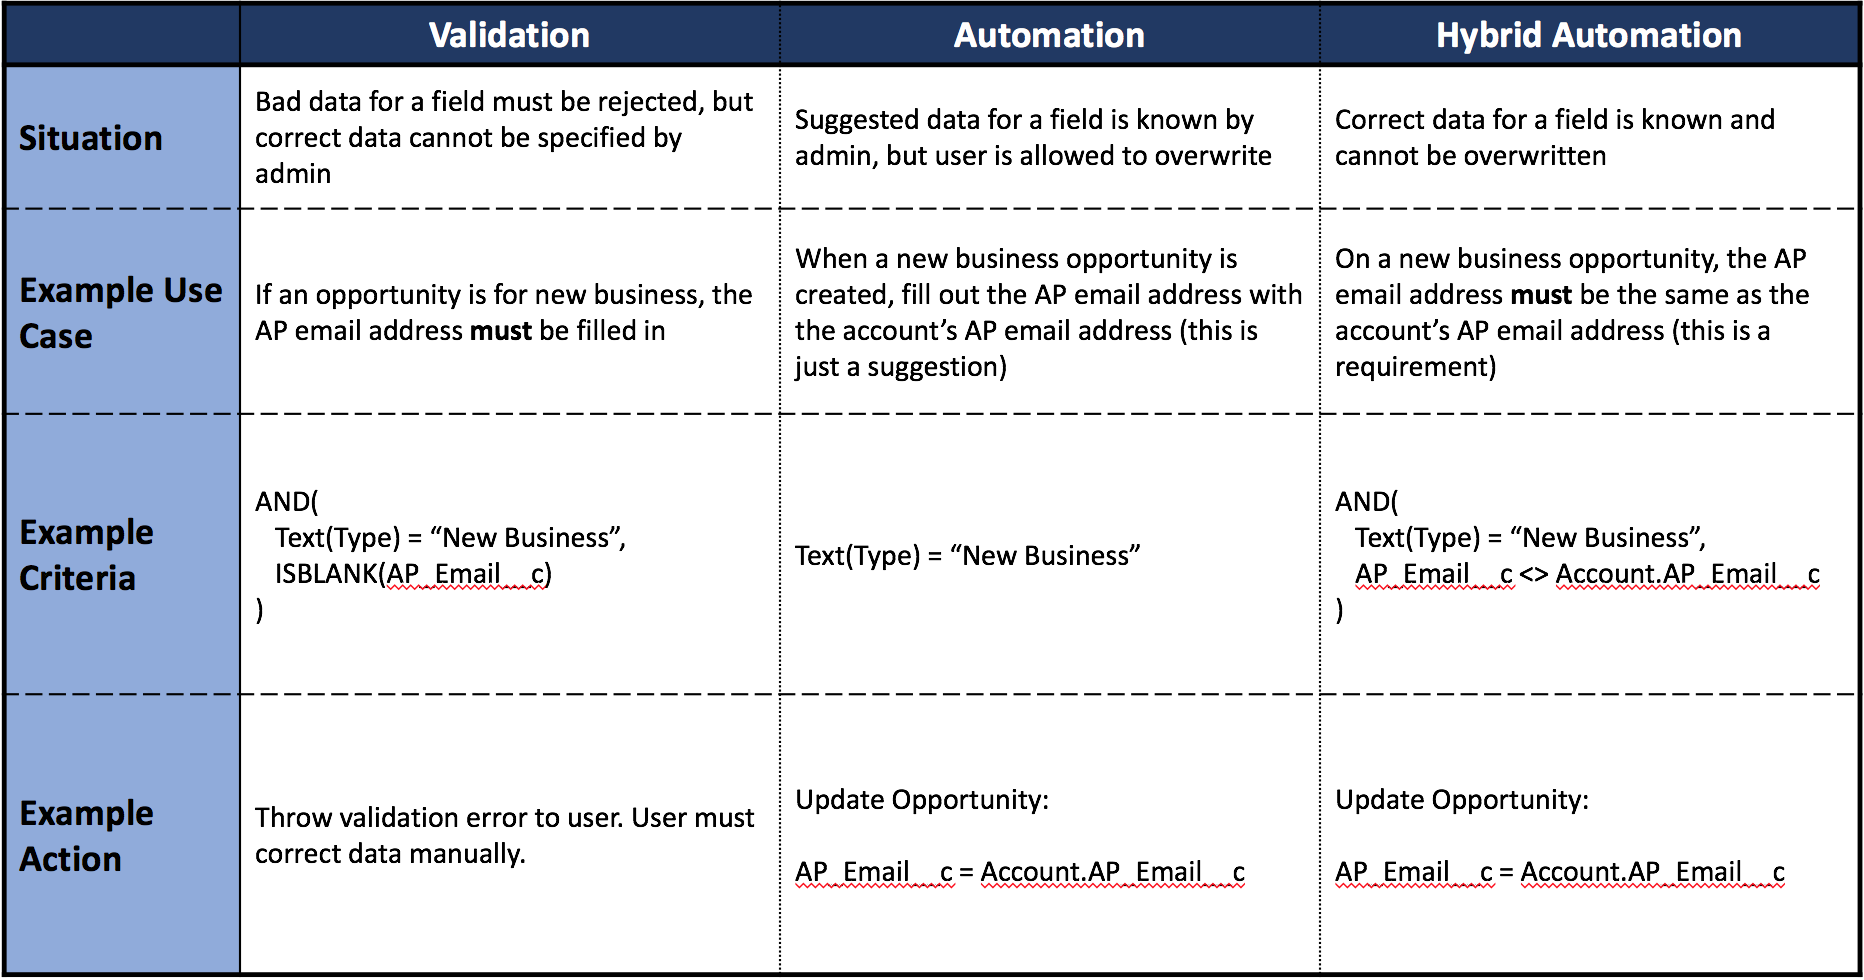 When to use validations, automations, and hybrid automations